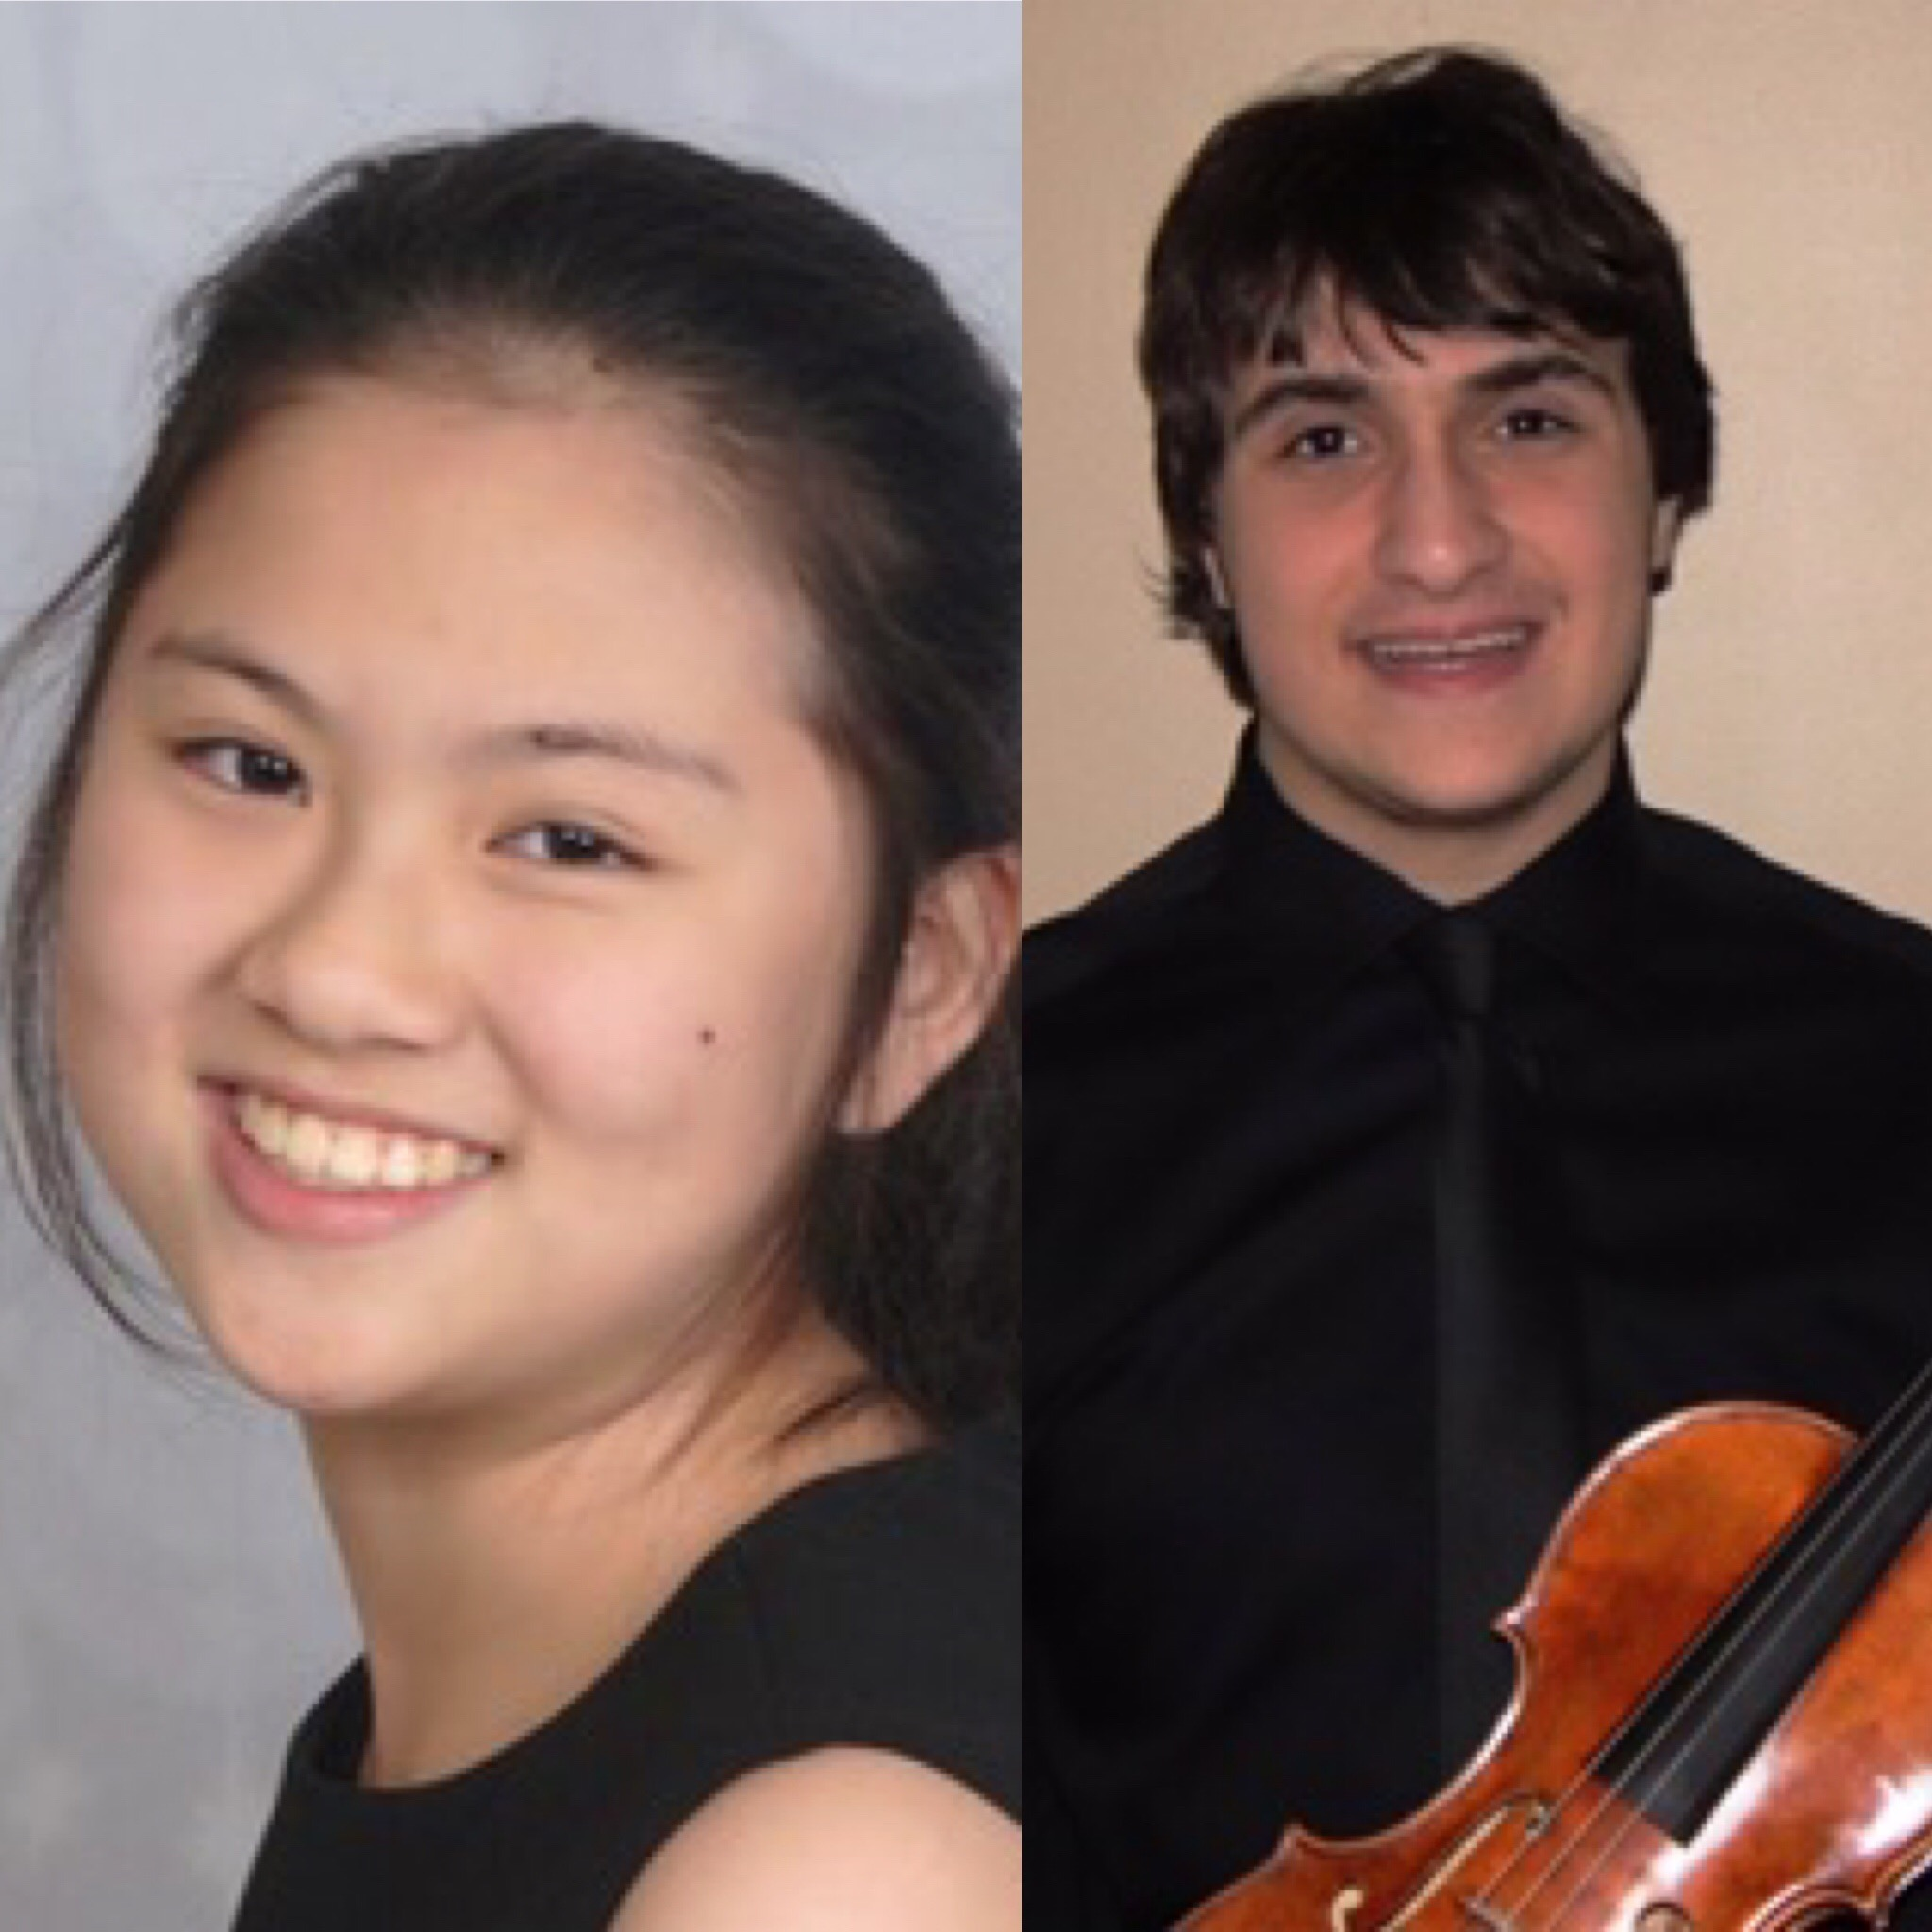 Students Chosen As Finalists In Metropolitan Youth Orchestra Concerto Competition